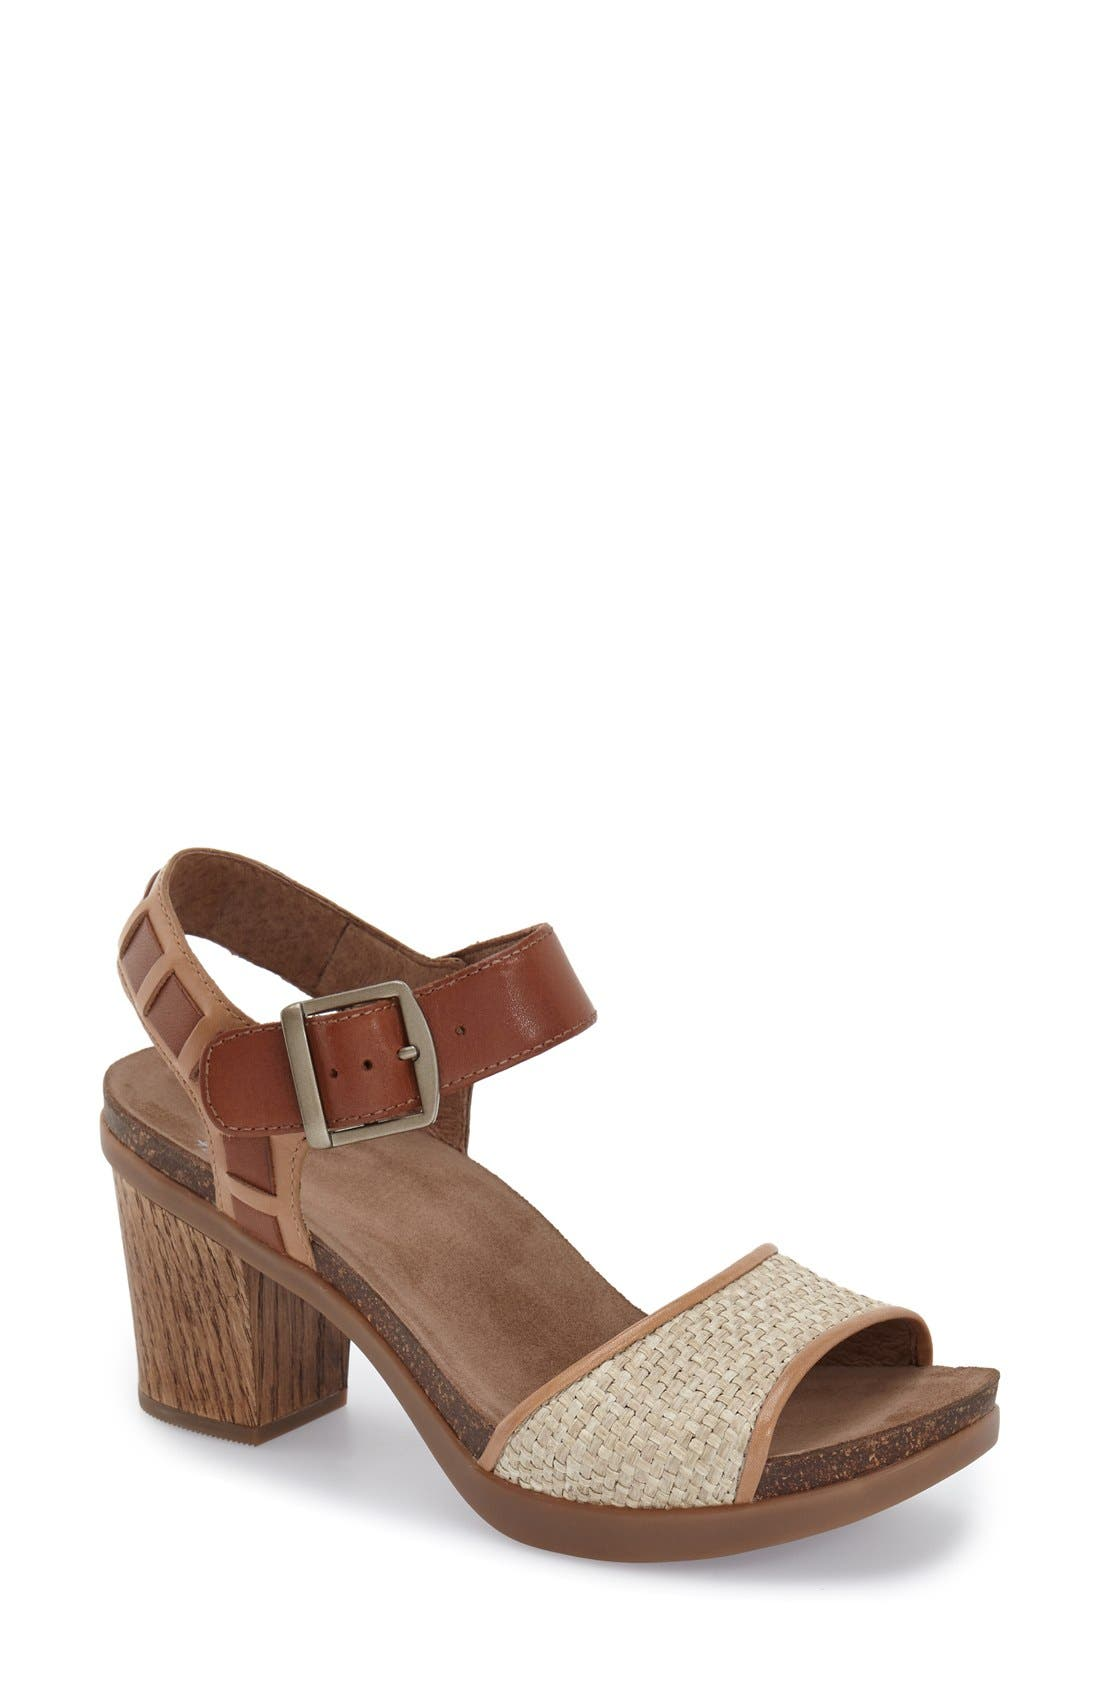 'Debby' Platform Sandal,                         Main,                         color,